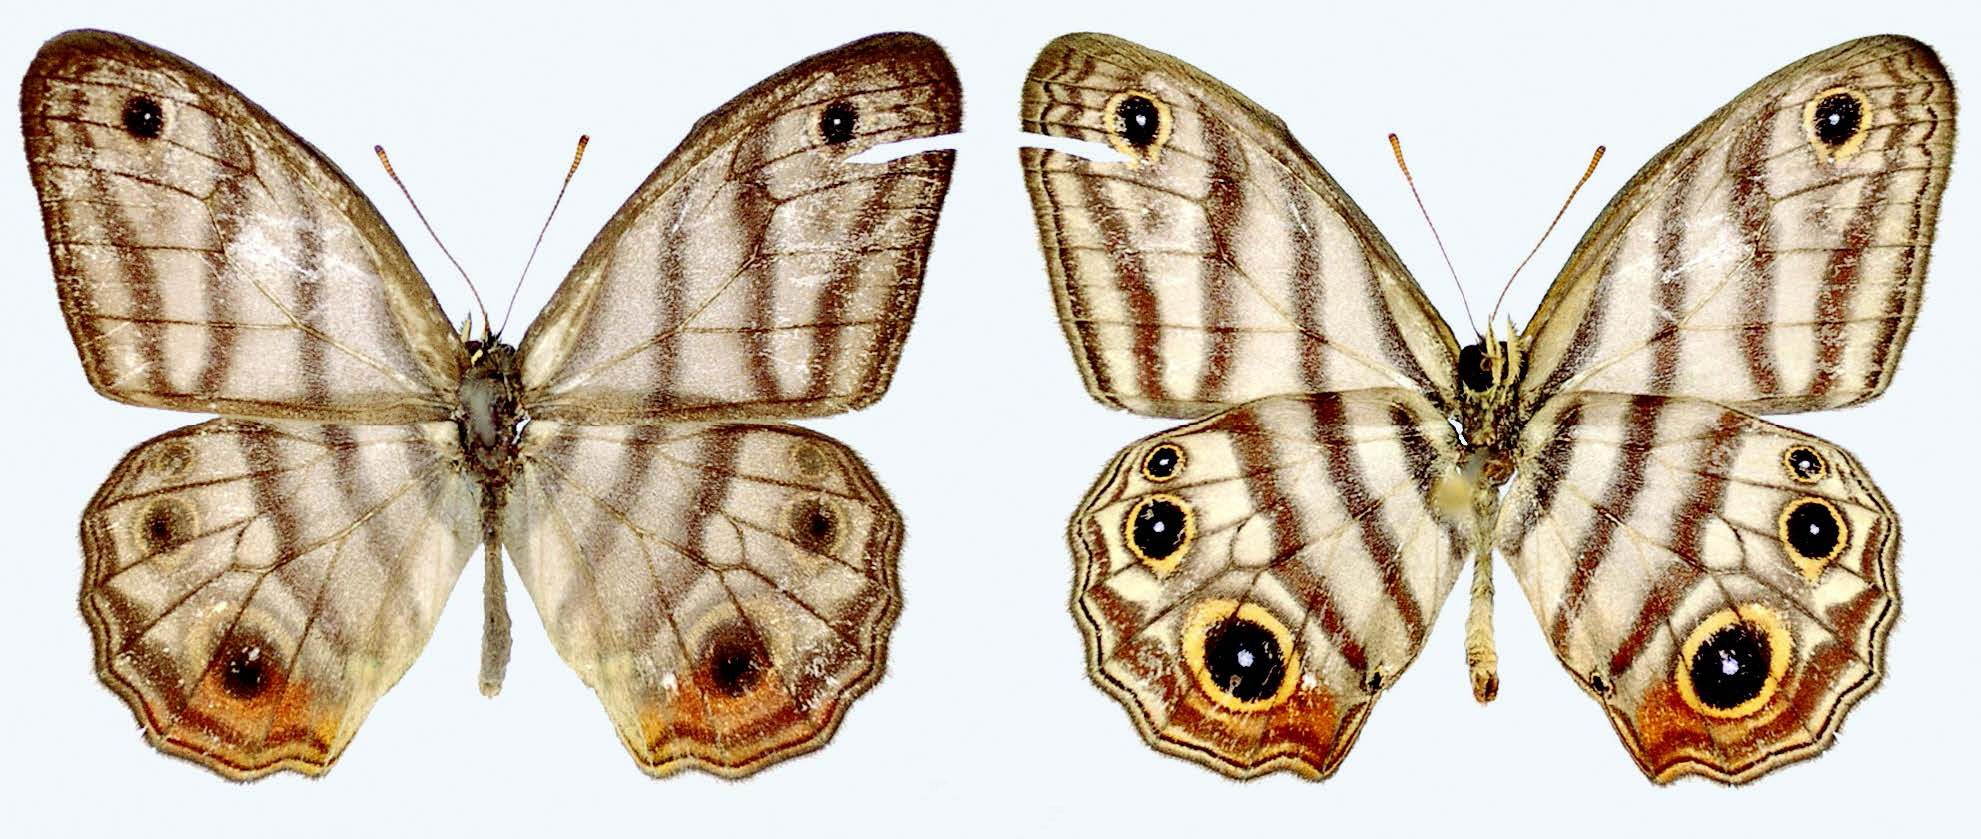 Attenboroughs-black-eyed-satyr-buterfly